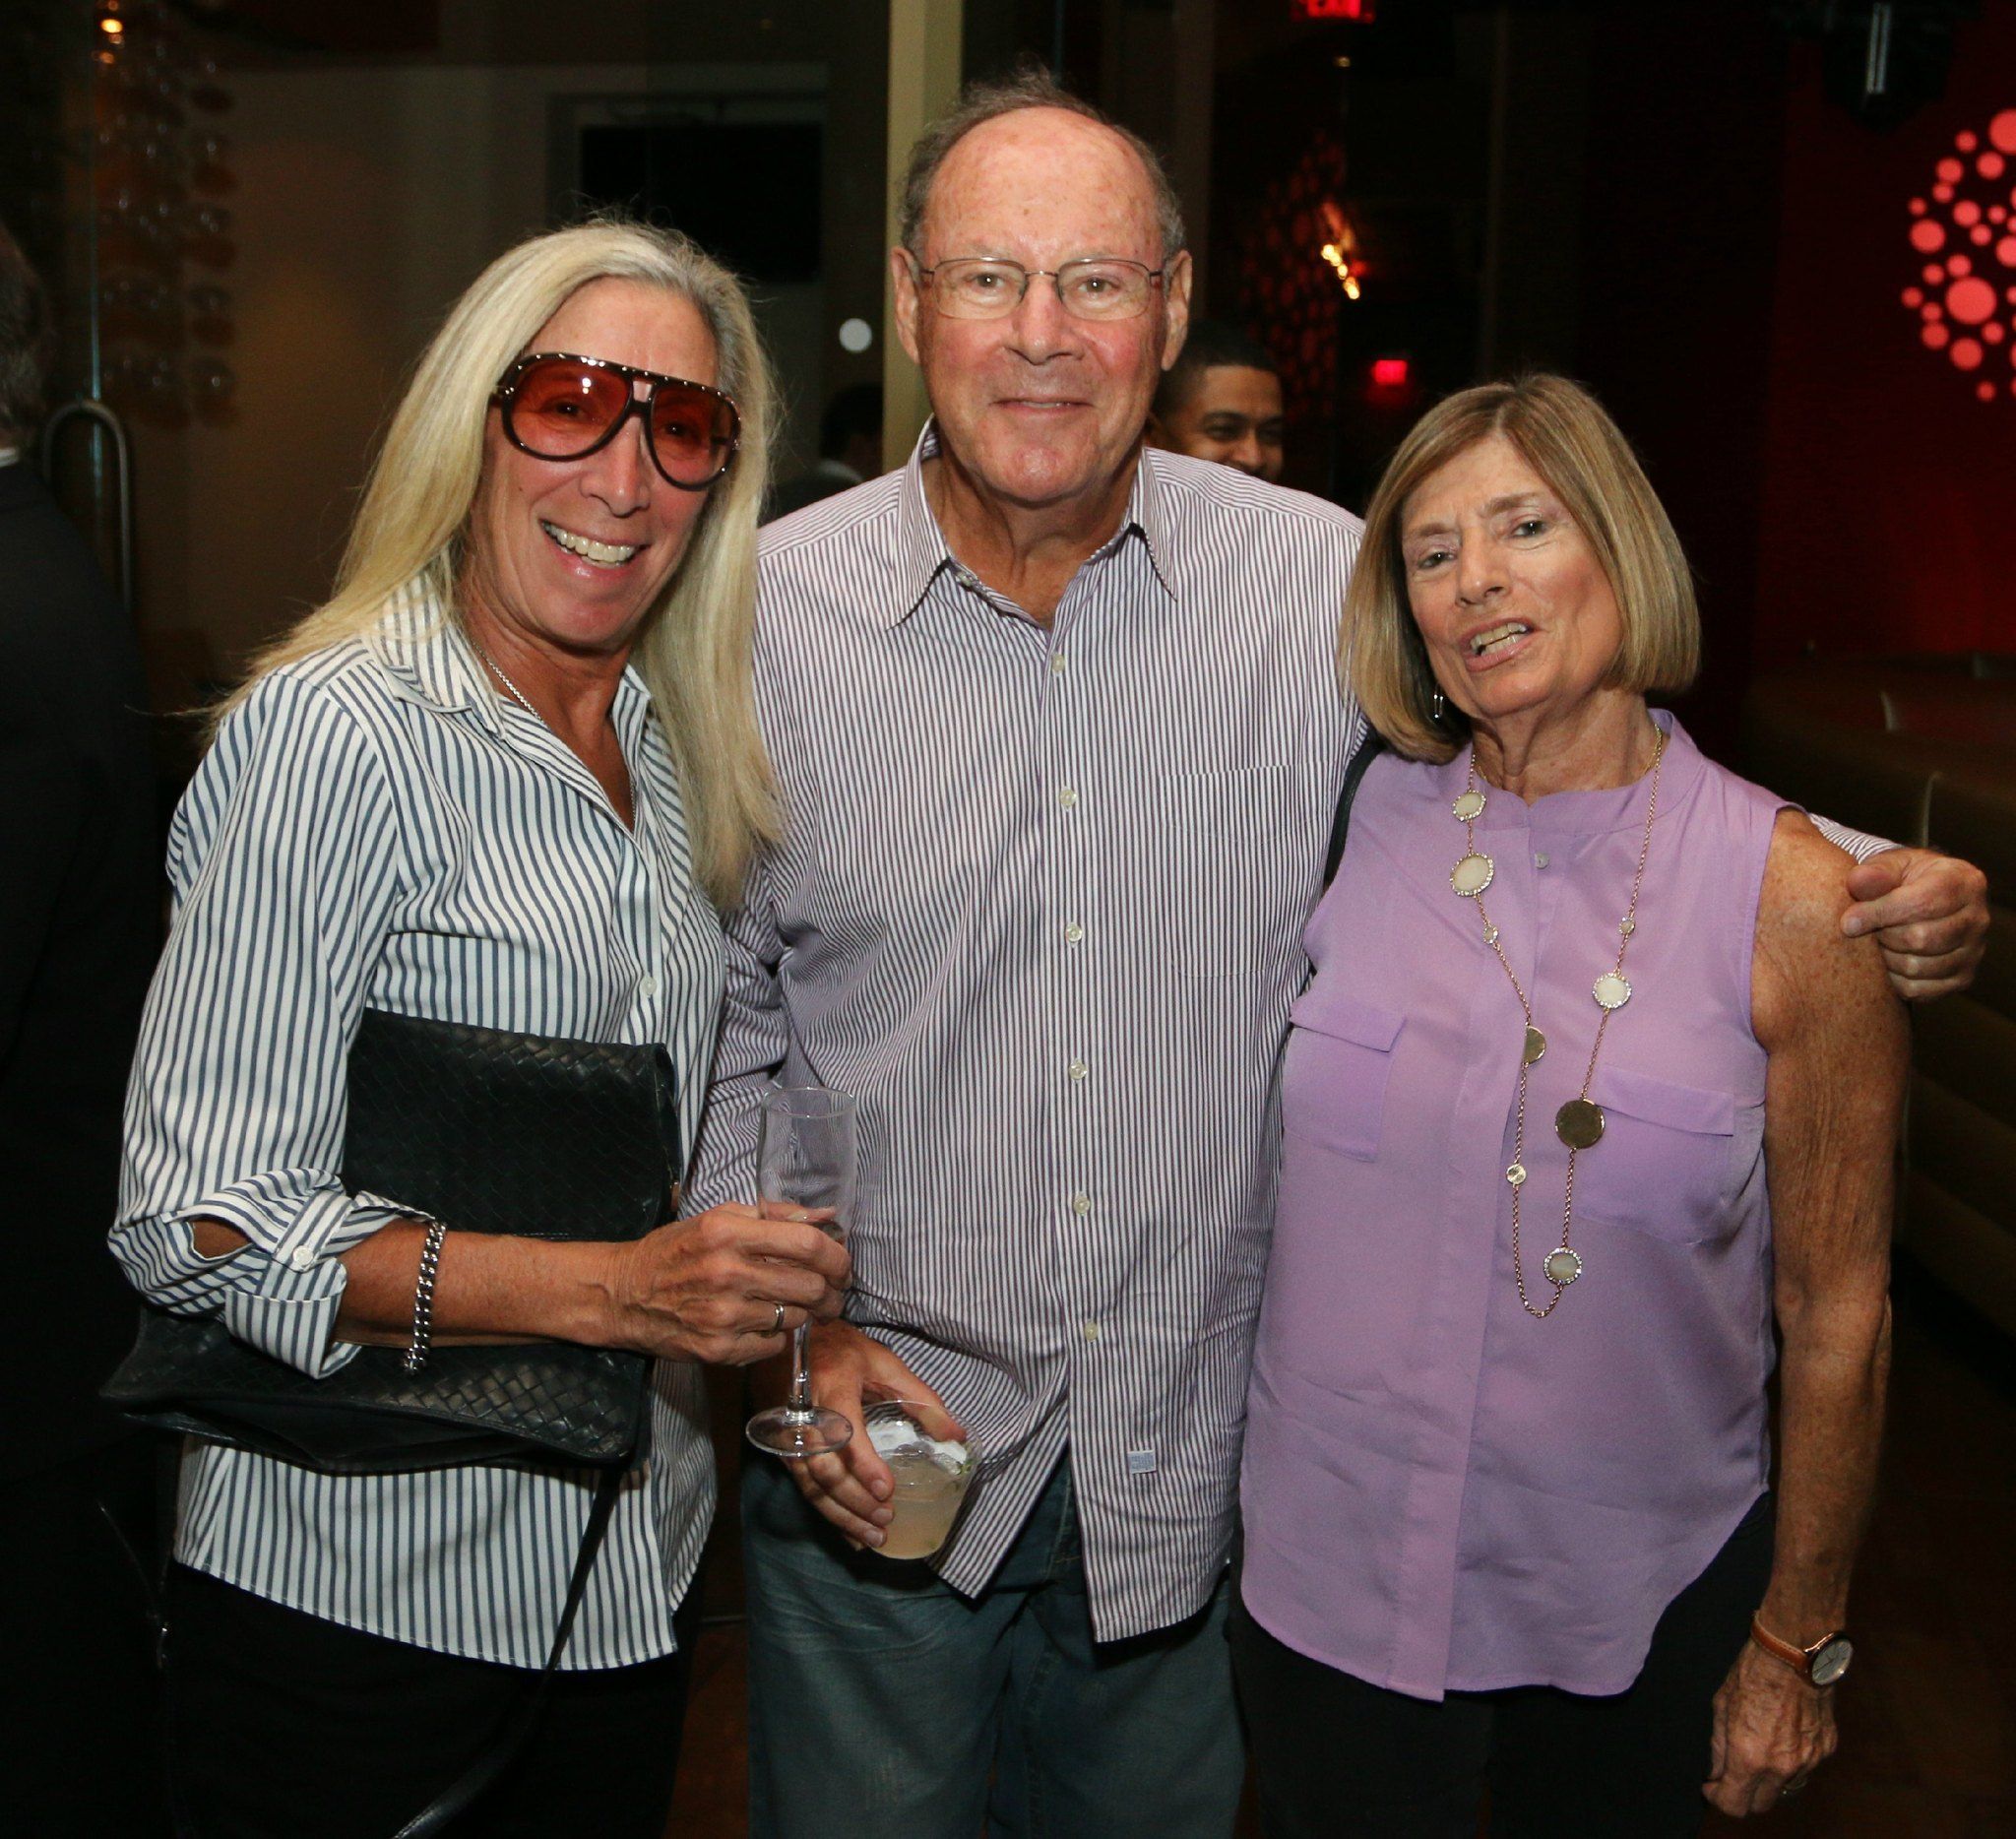 Jazziz Nightlife Grand Opening Party - Ronnie Landau, Bob and Carole Armon